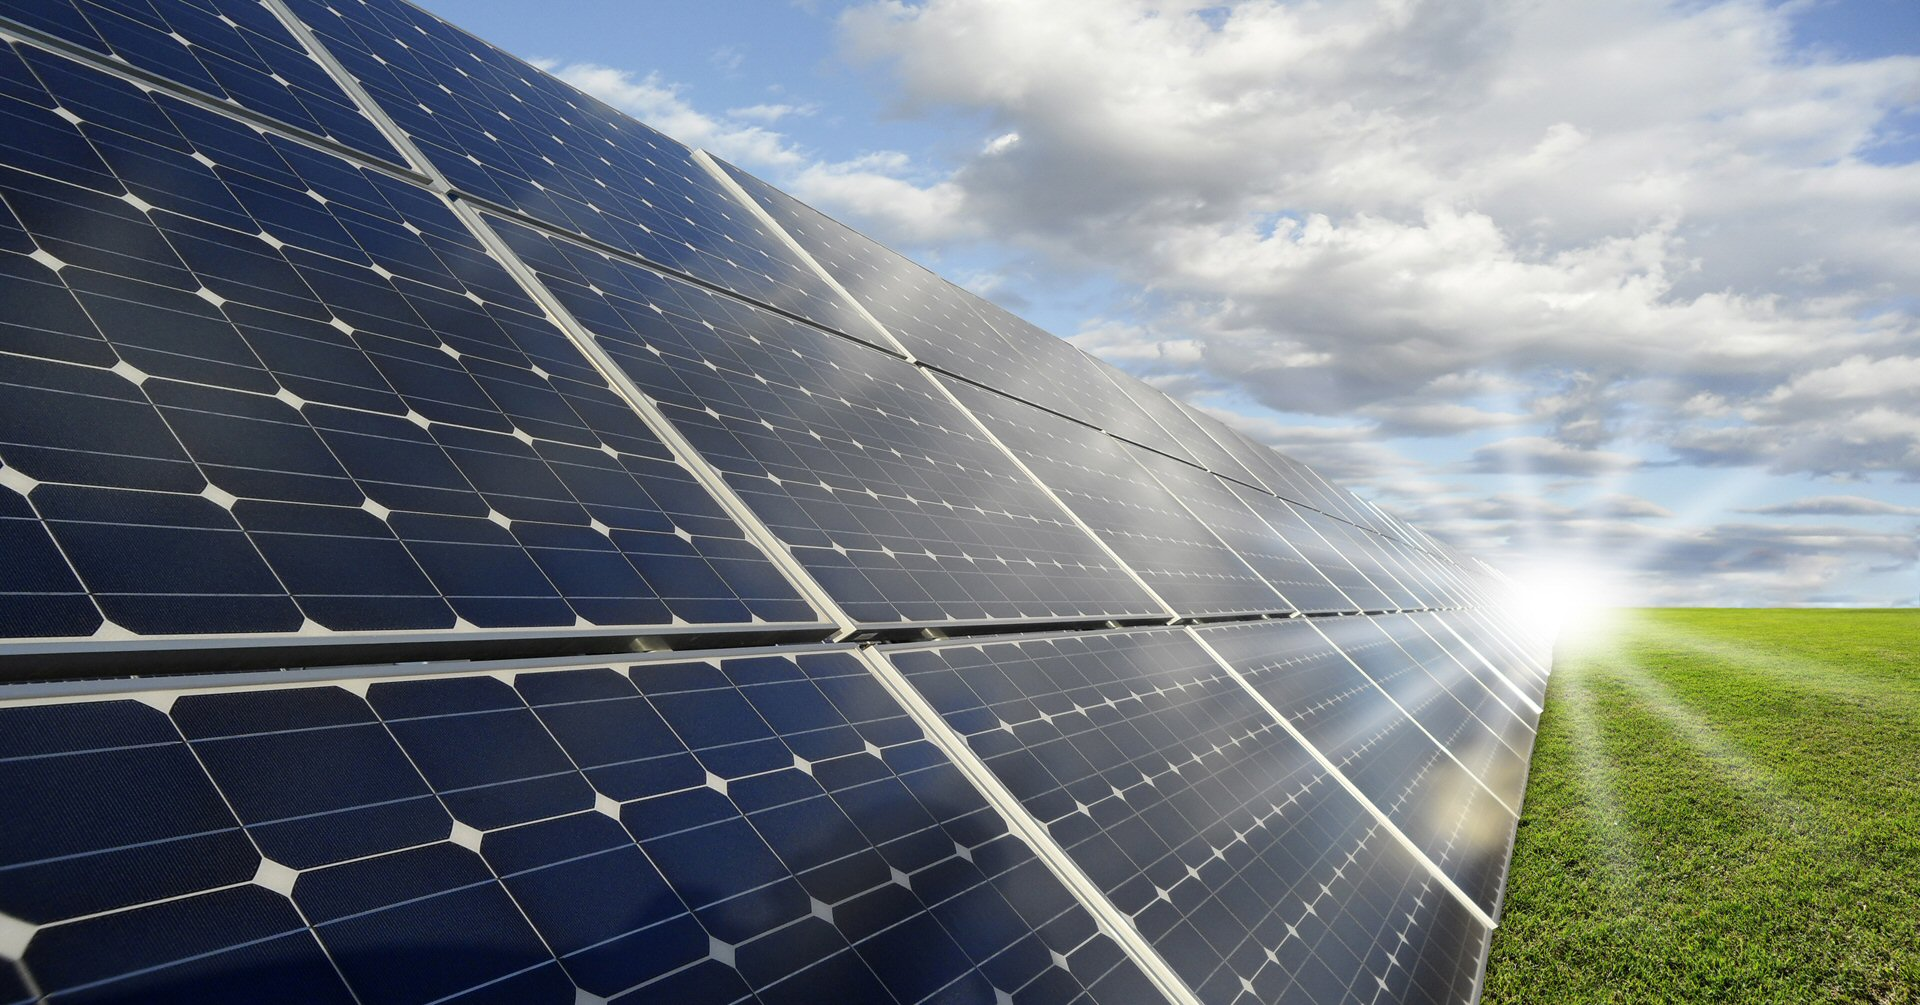 solar energys place in the power industry Cleantechnica is the #1 cleantech-focused news & analysis website in the us & the world, focusing primarily on electric cars, solar energy, wind energy, & energy storage.